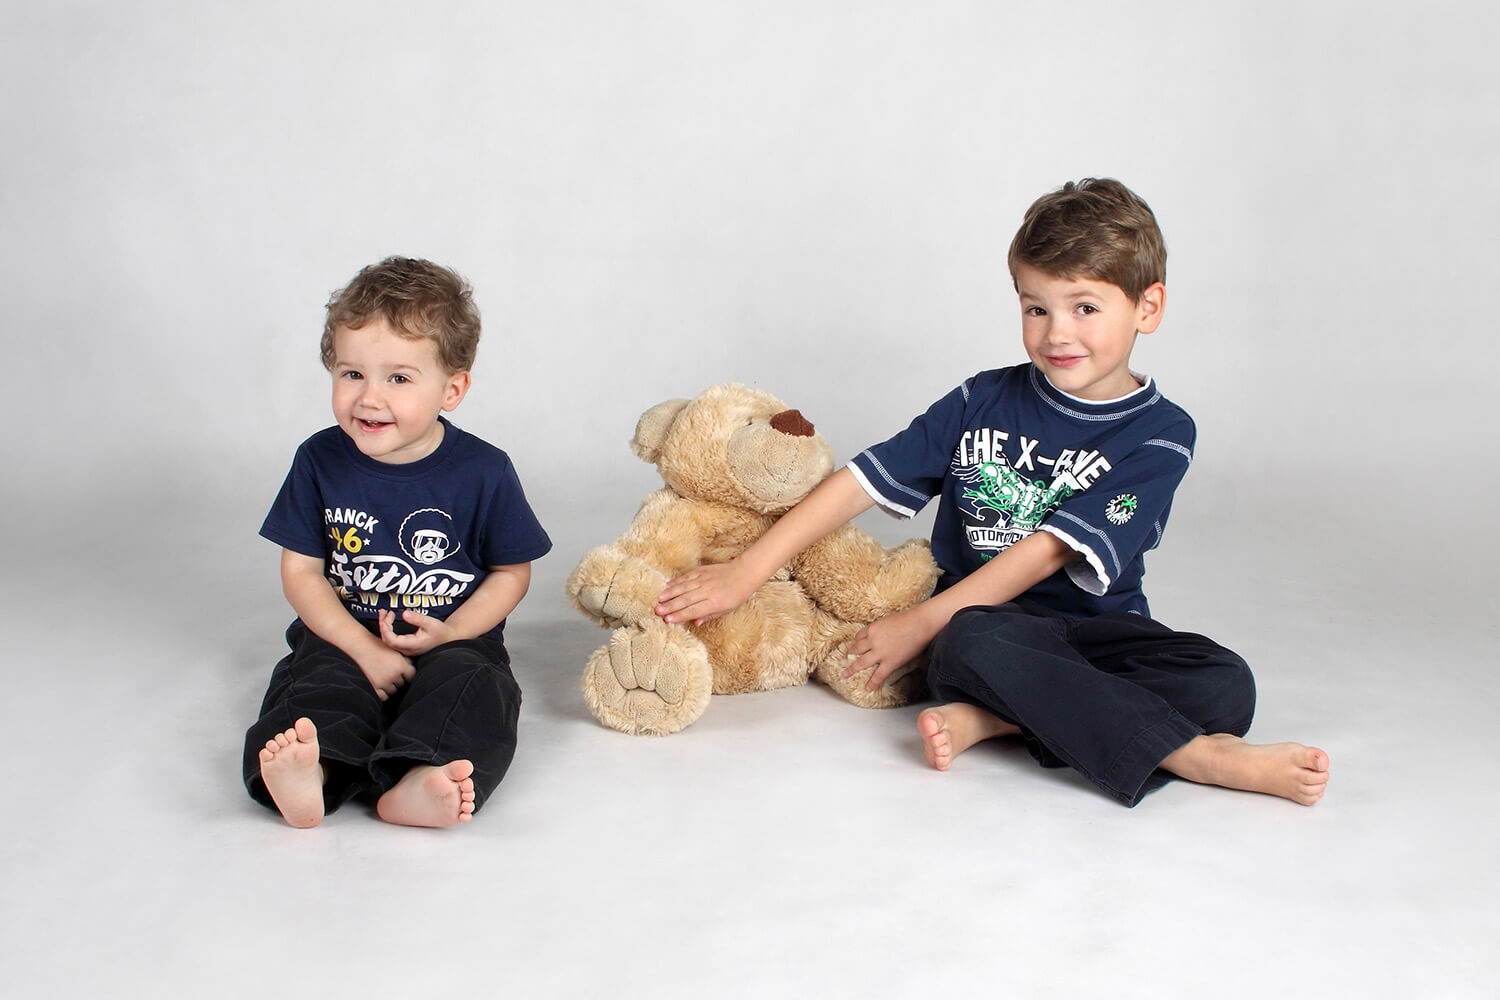 family photo of two brothers and a teddy bear on a light background